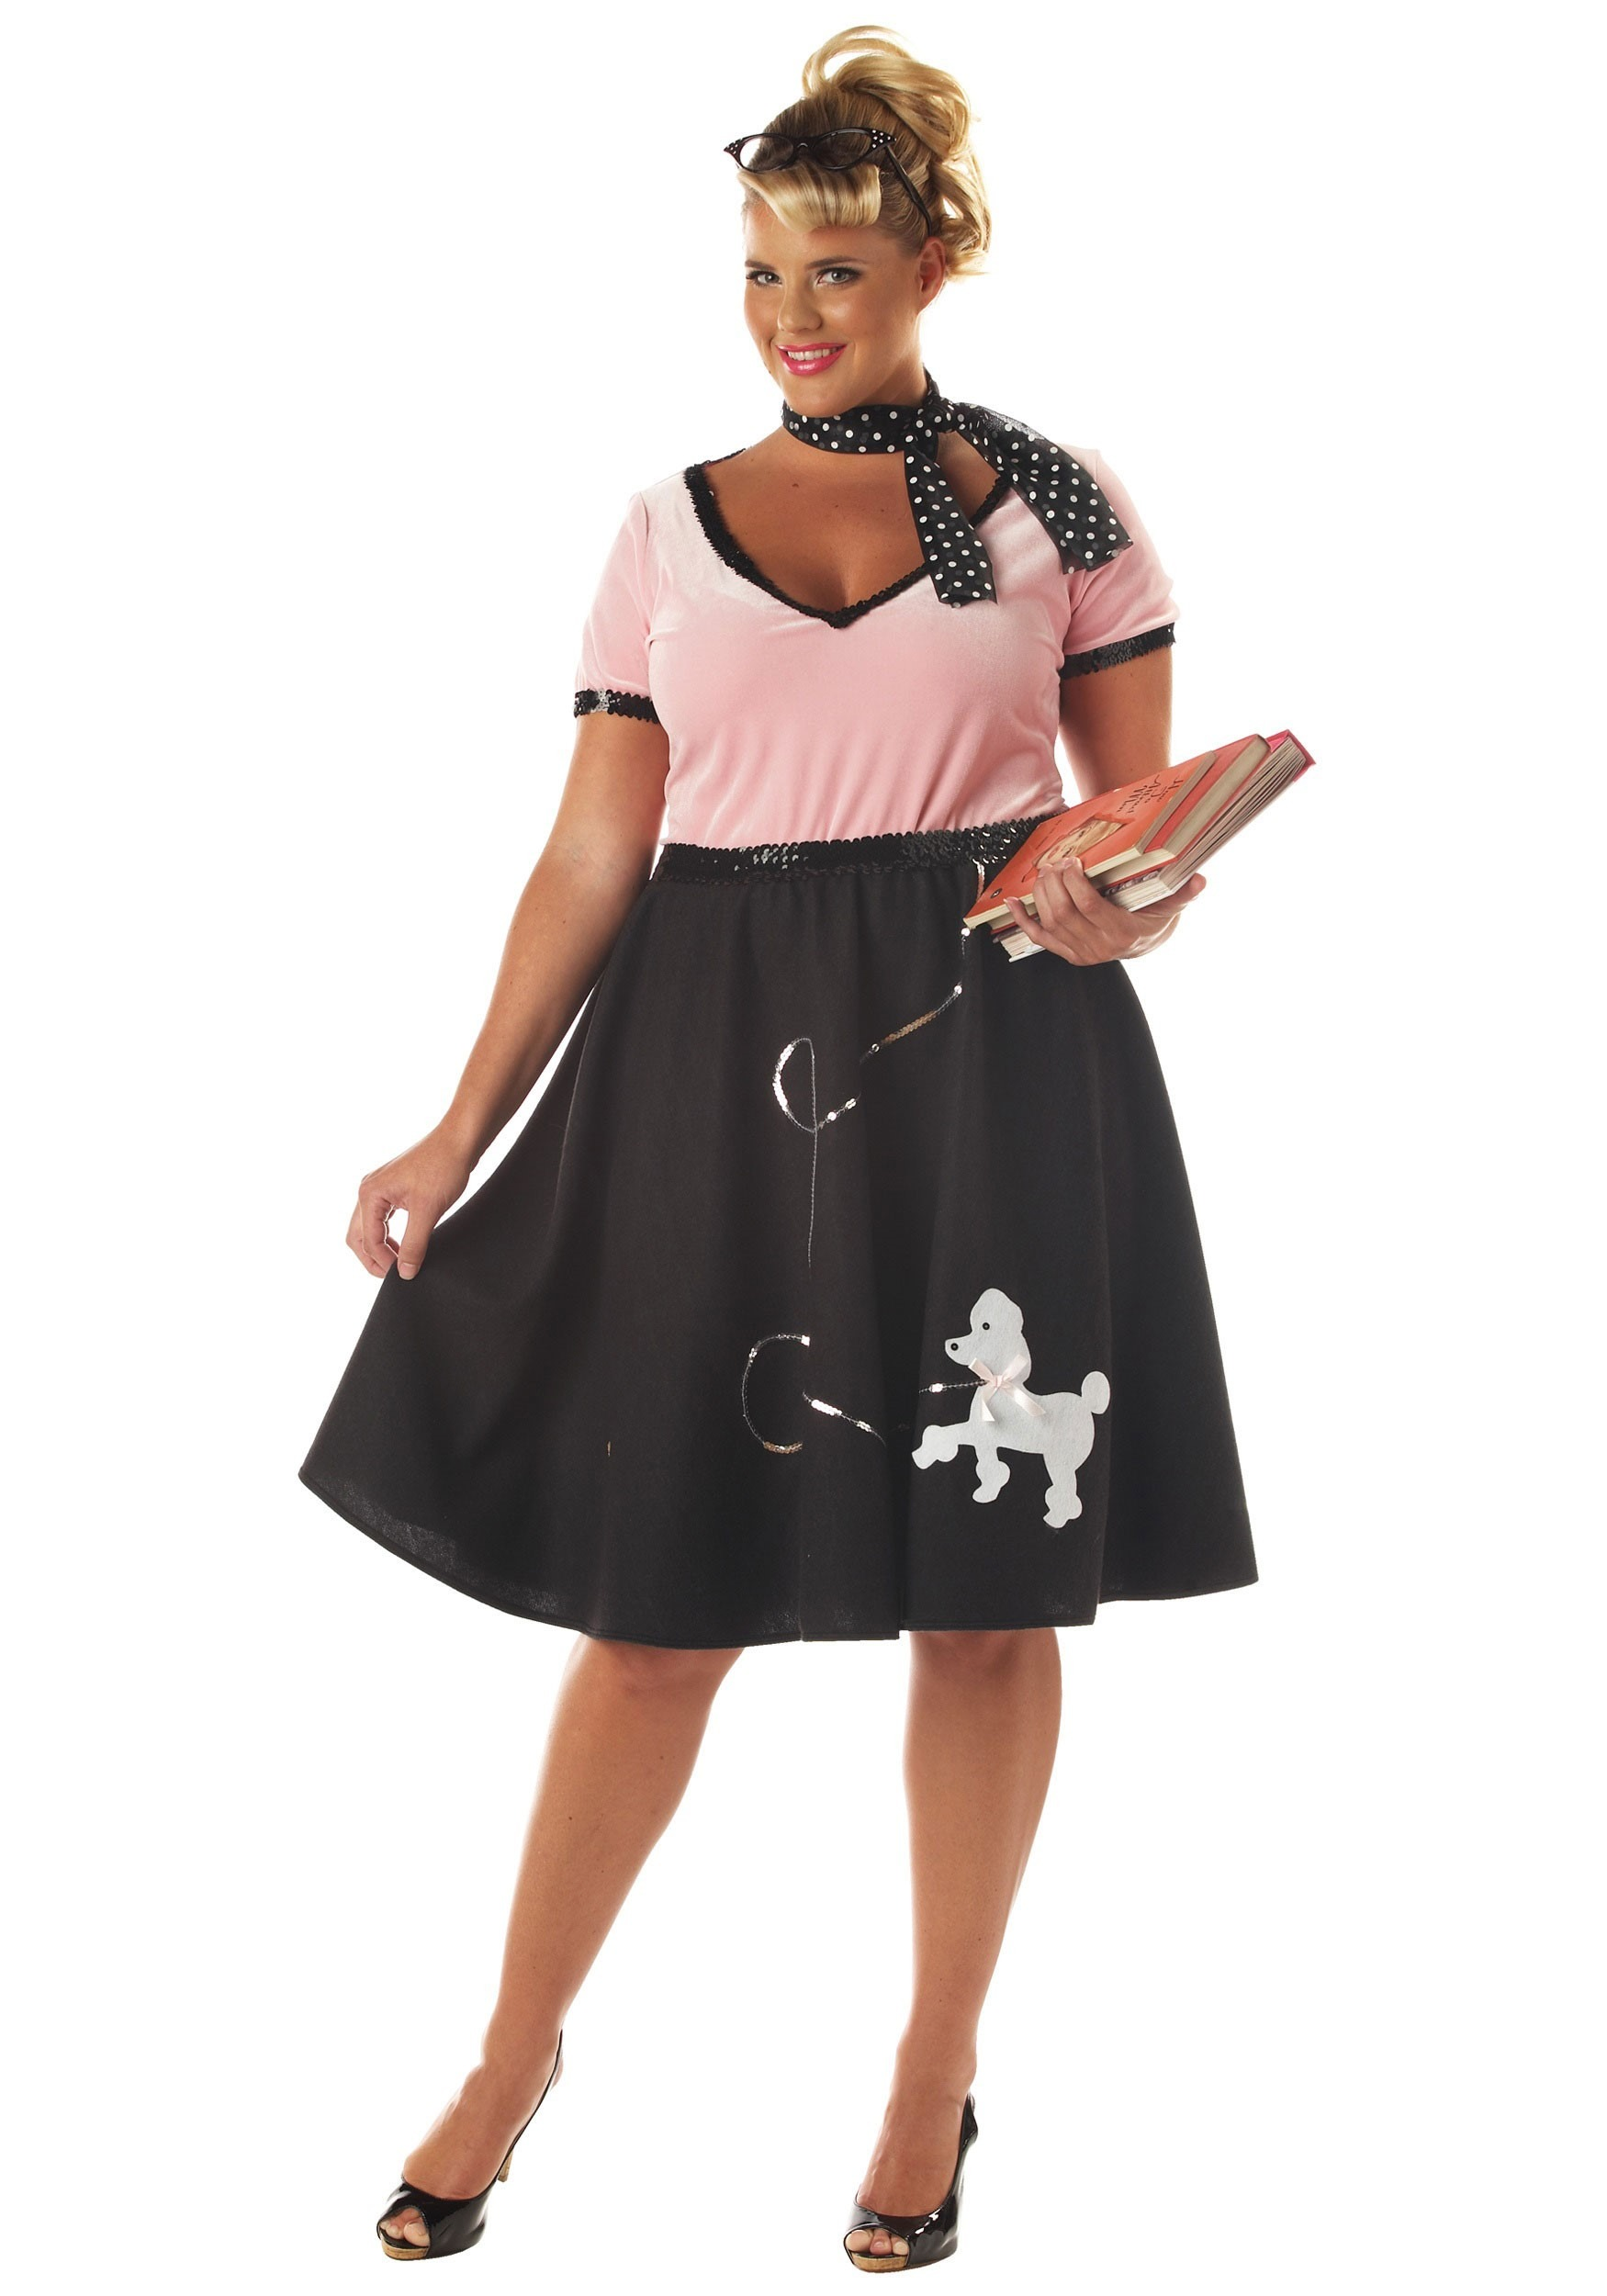 Plus Size 50s Sweetheart Costume  sc 1 st  Halloween Costumes : 50 costume  - Germanpascual.Com